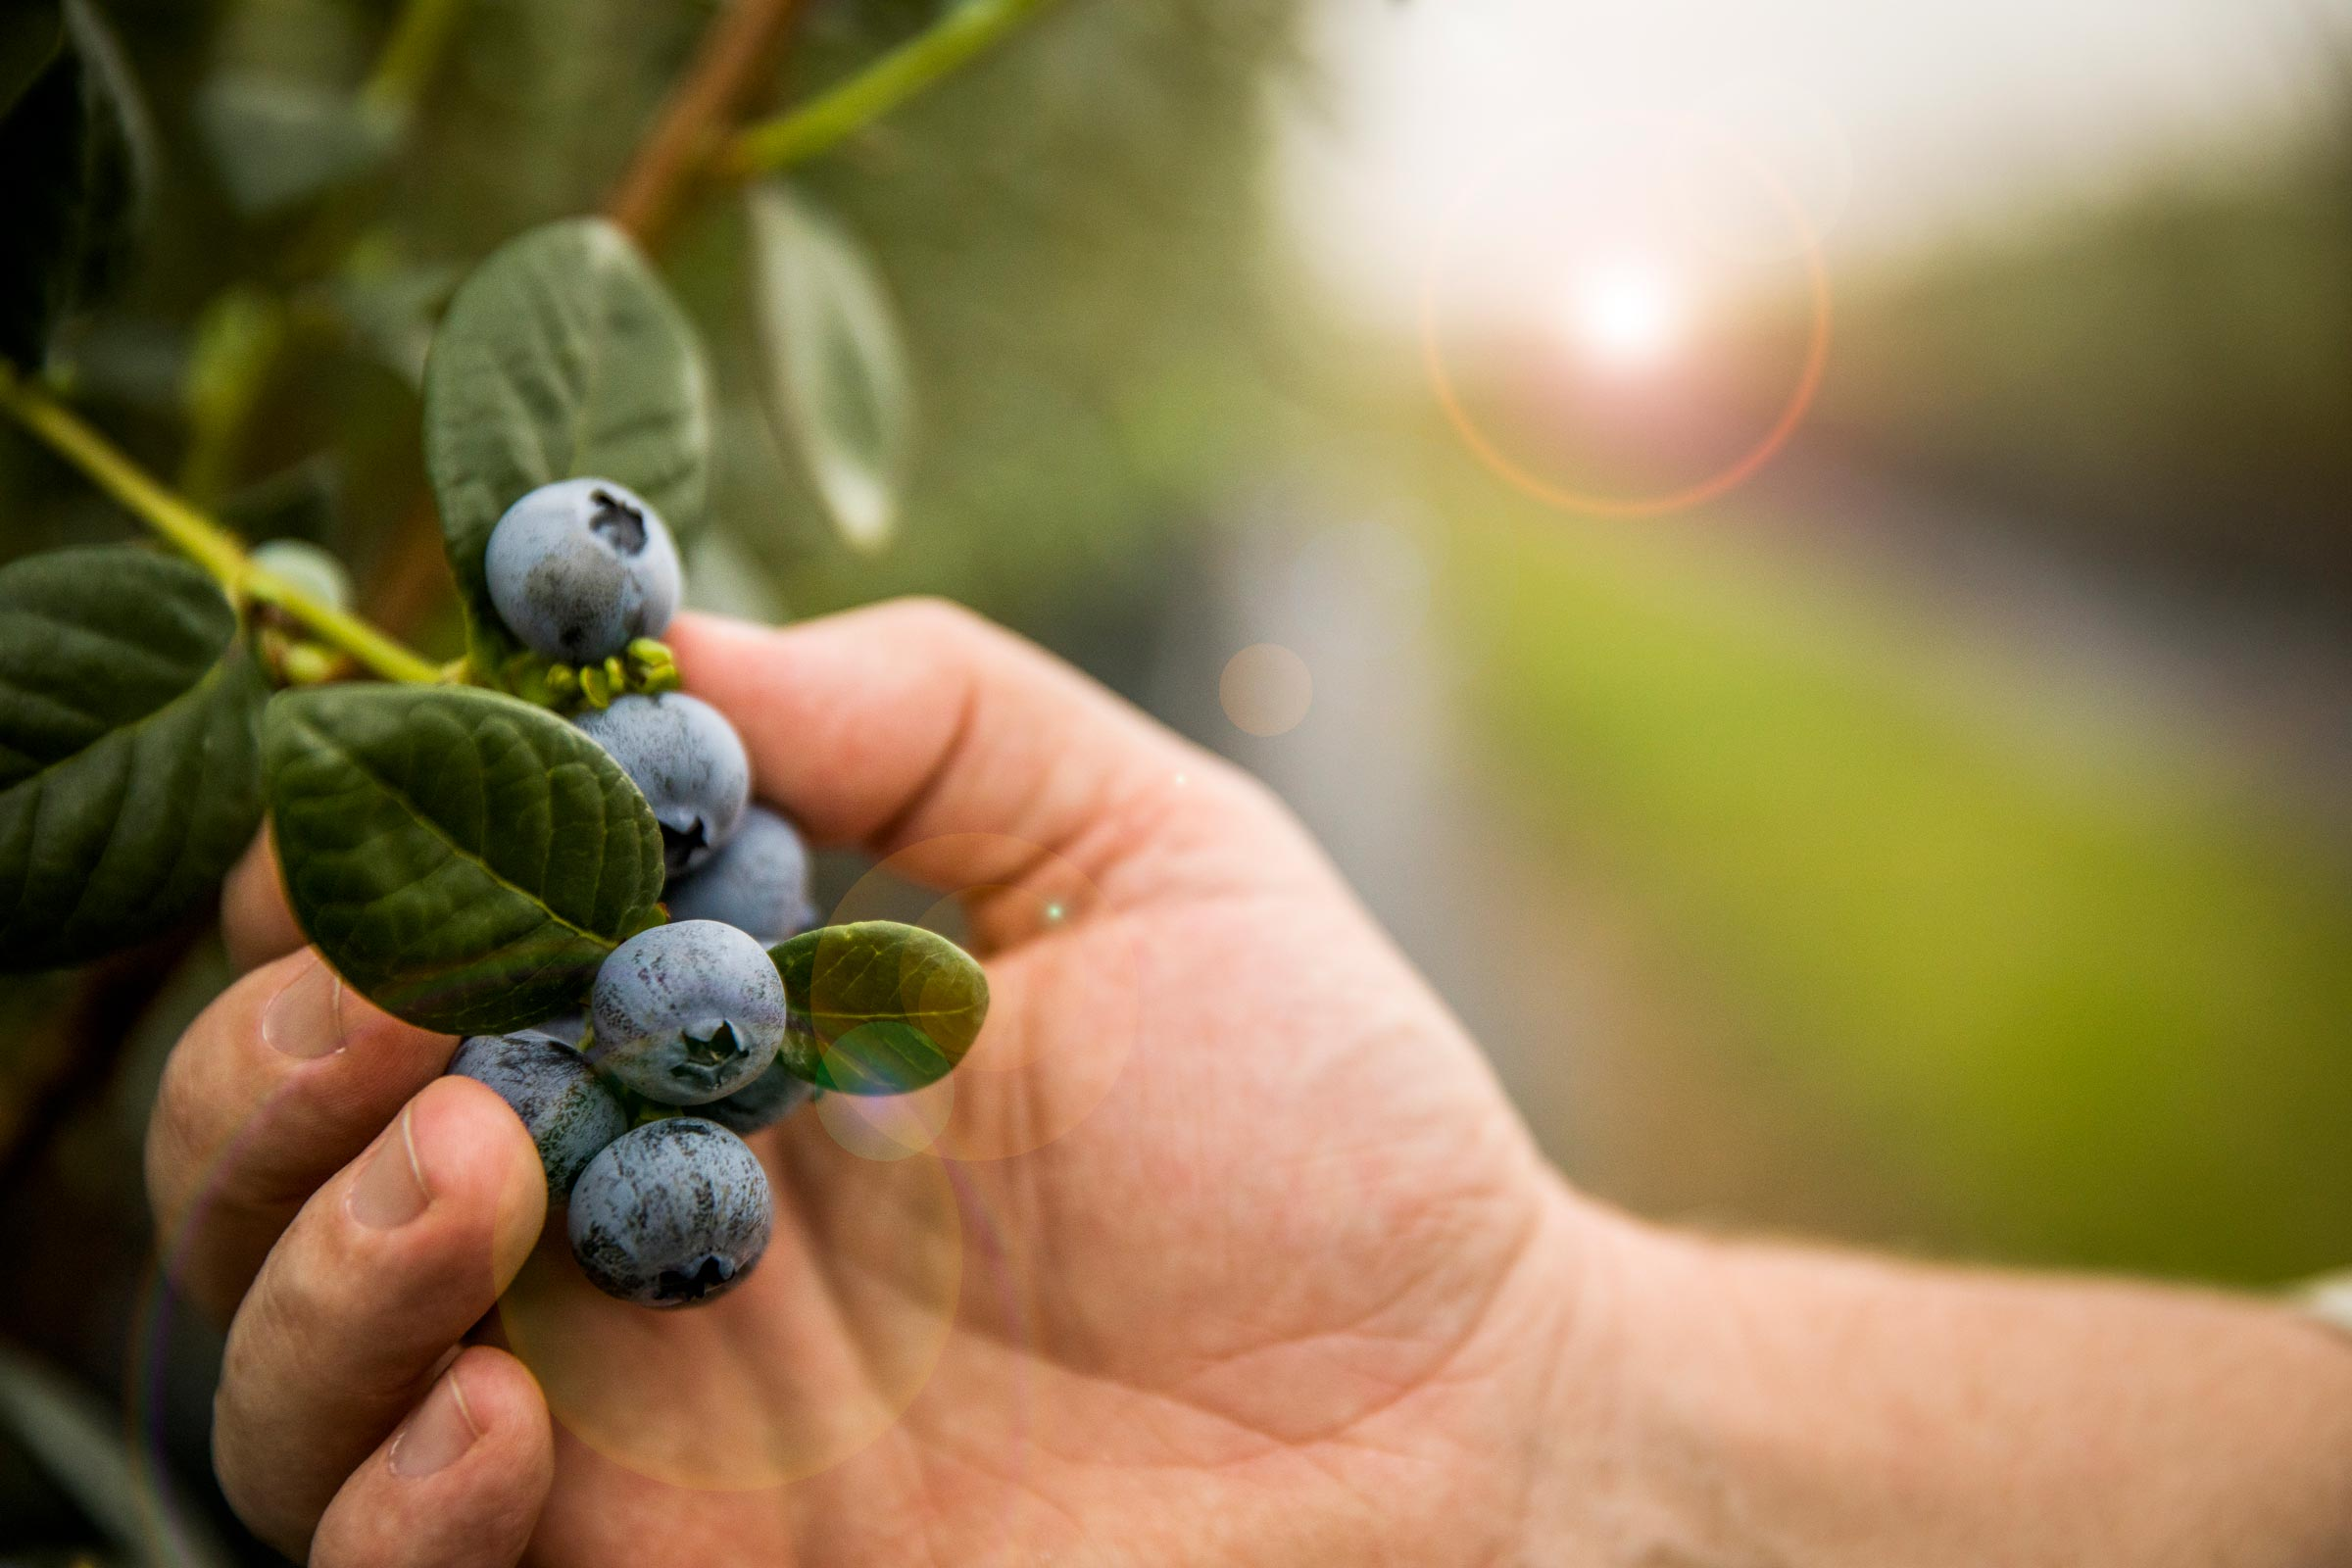 close up of hand picking blueberries